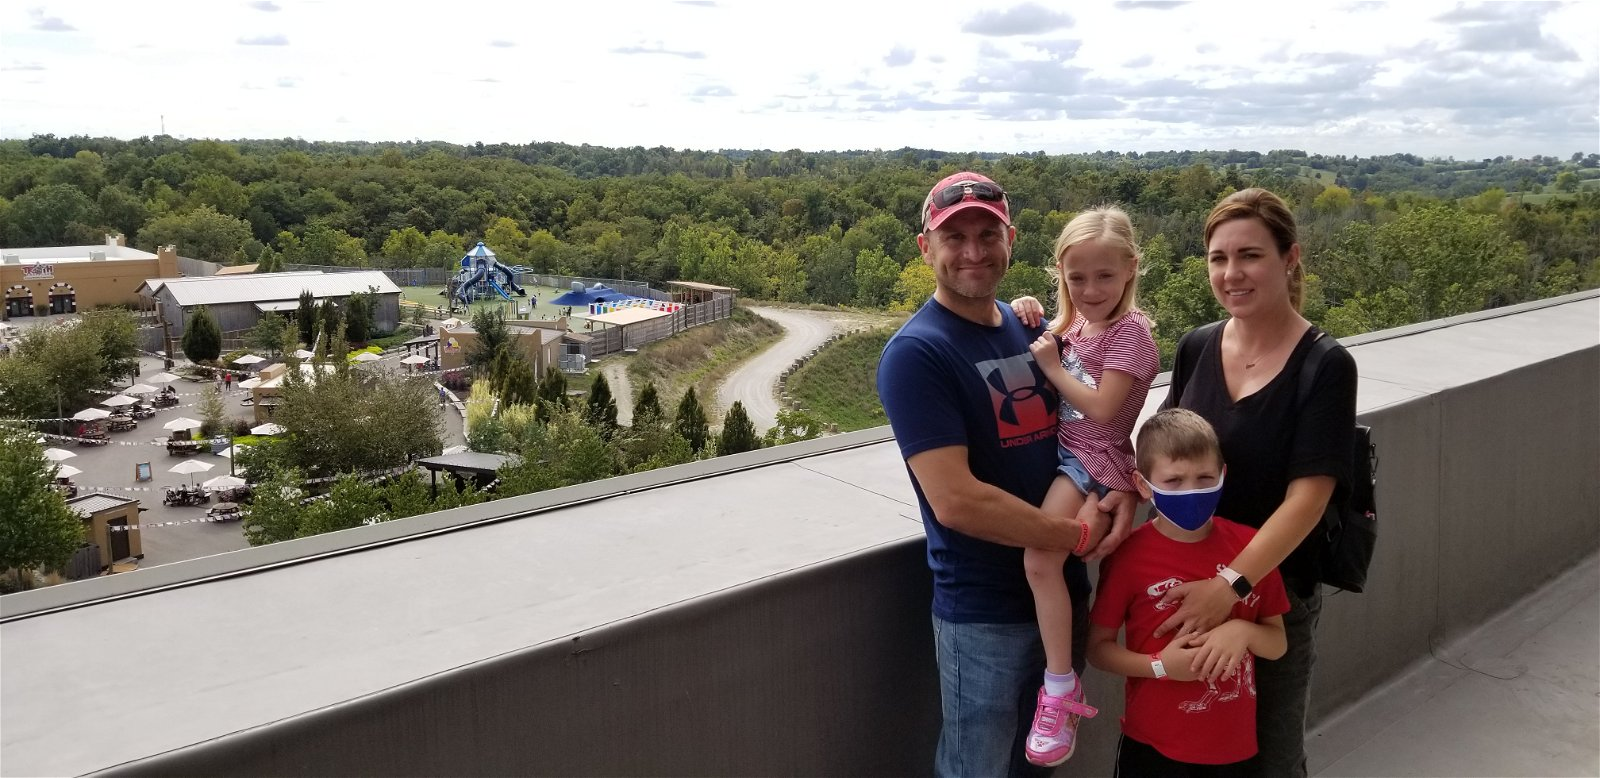 Stensrud Family at the Ark Encounter